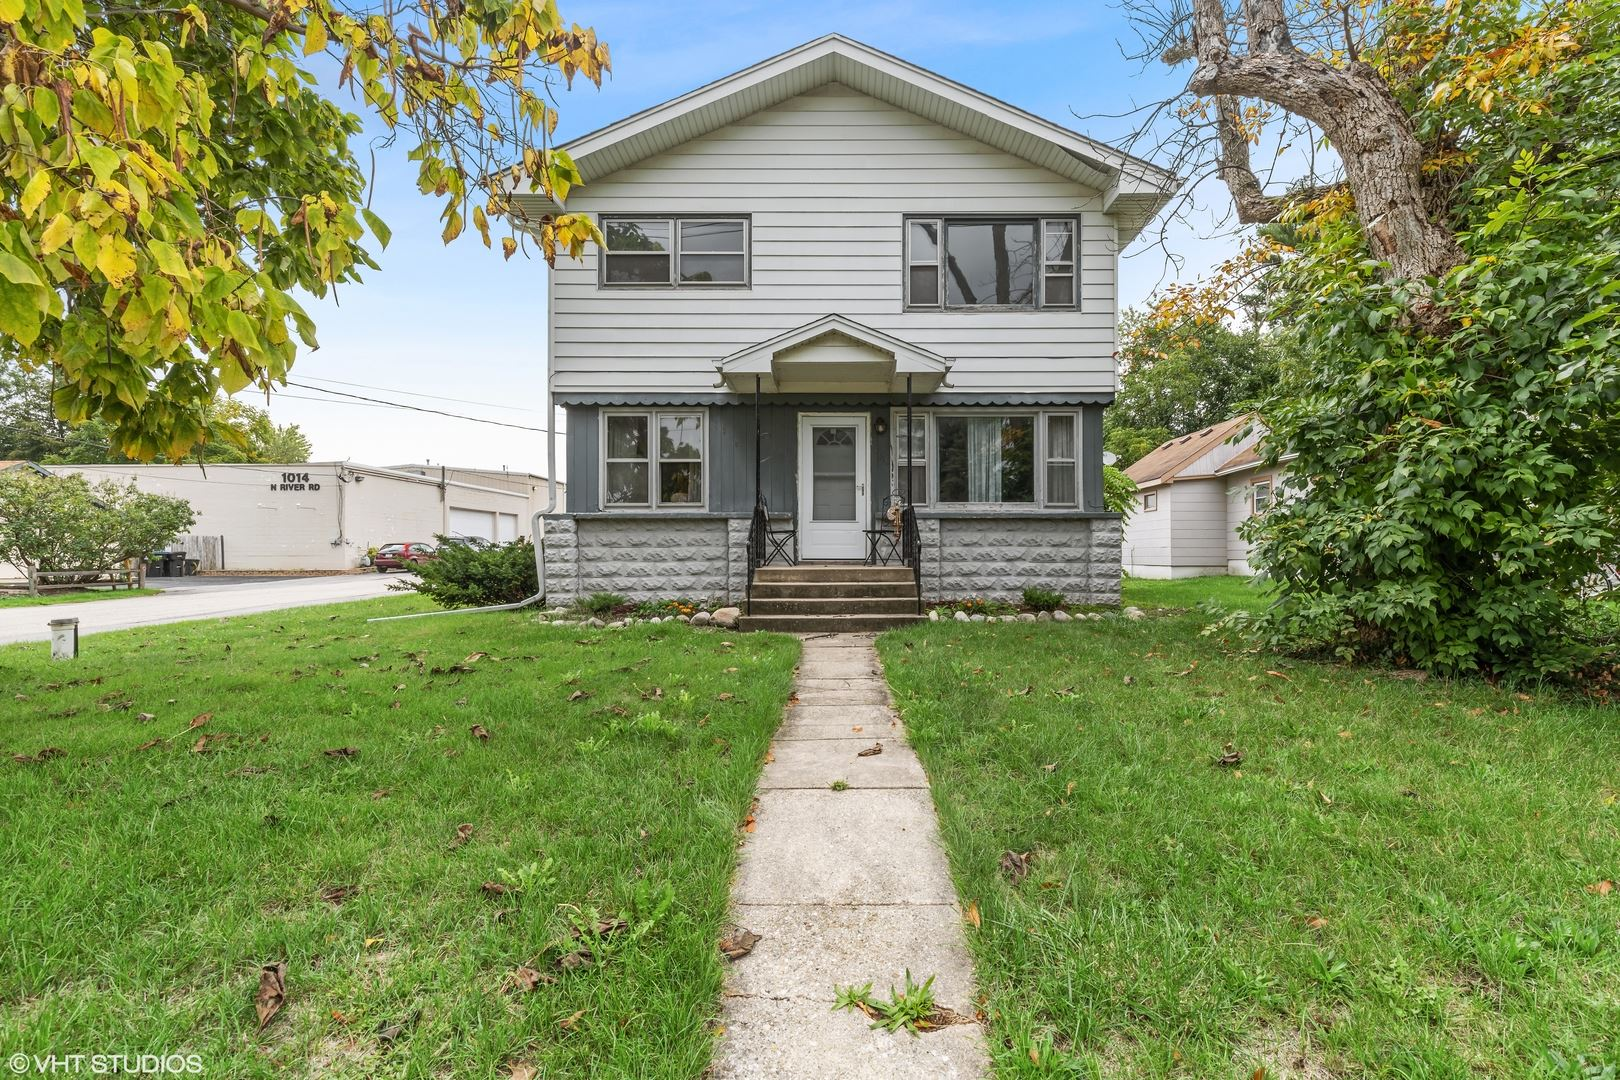 1010 N River Road, McHenry, IL 60051 - #: 11211511